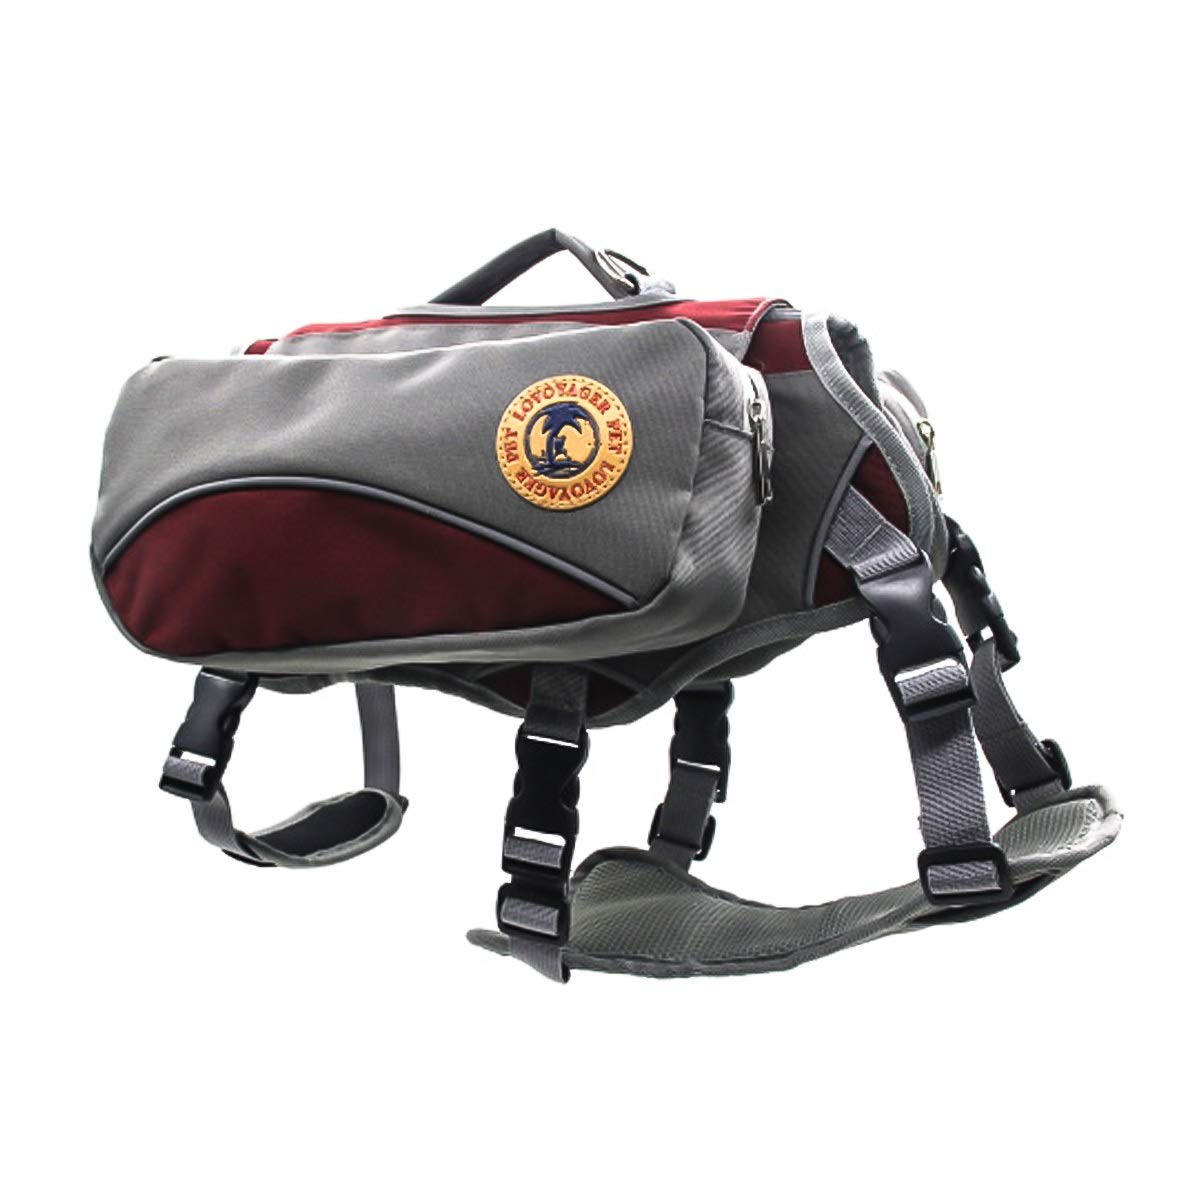 Red L Red L Portable Outdoor Pet Saddle Bag Dual-use Dog Backpack Camping Carry Bag for Training Hiking Travel (color   Red, Size   L)